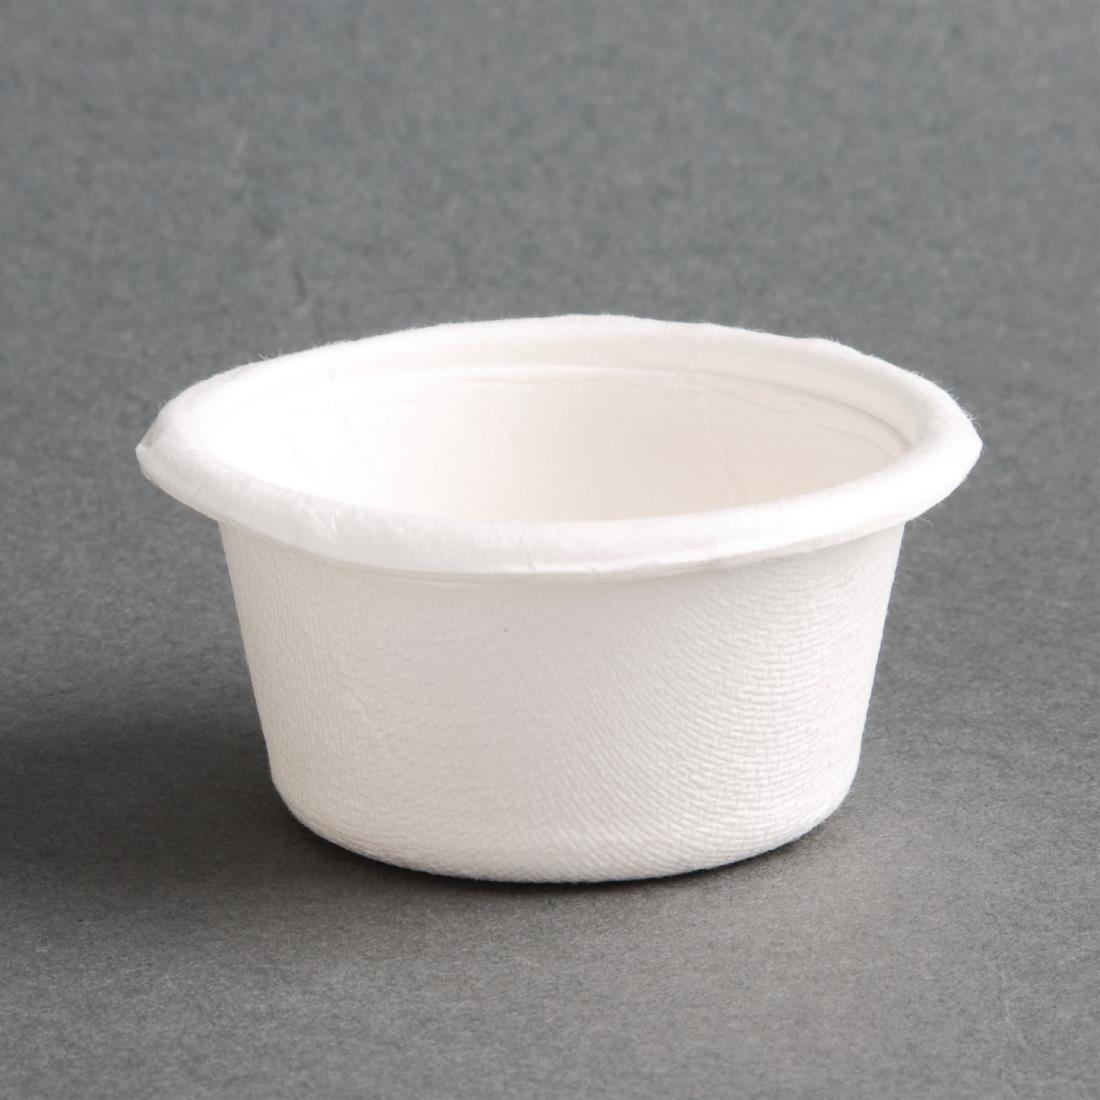 Image of Fiesta Green Bagasse Condiment Pots 59ml (Pack of 1000) Pack of 1000